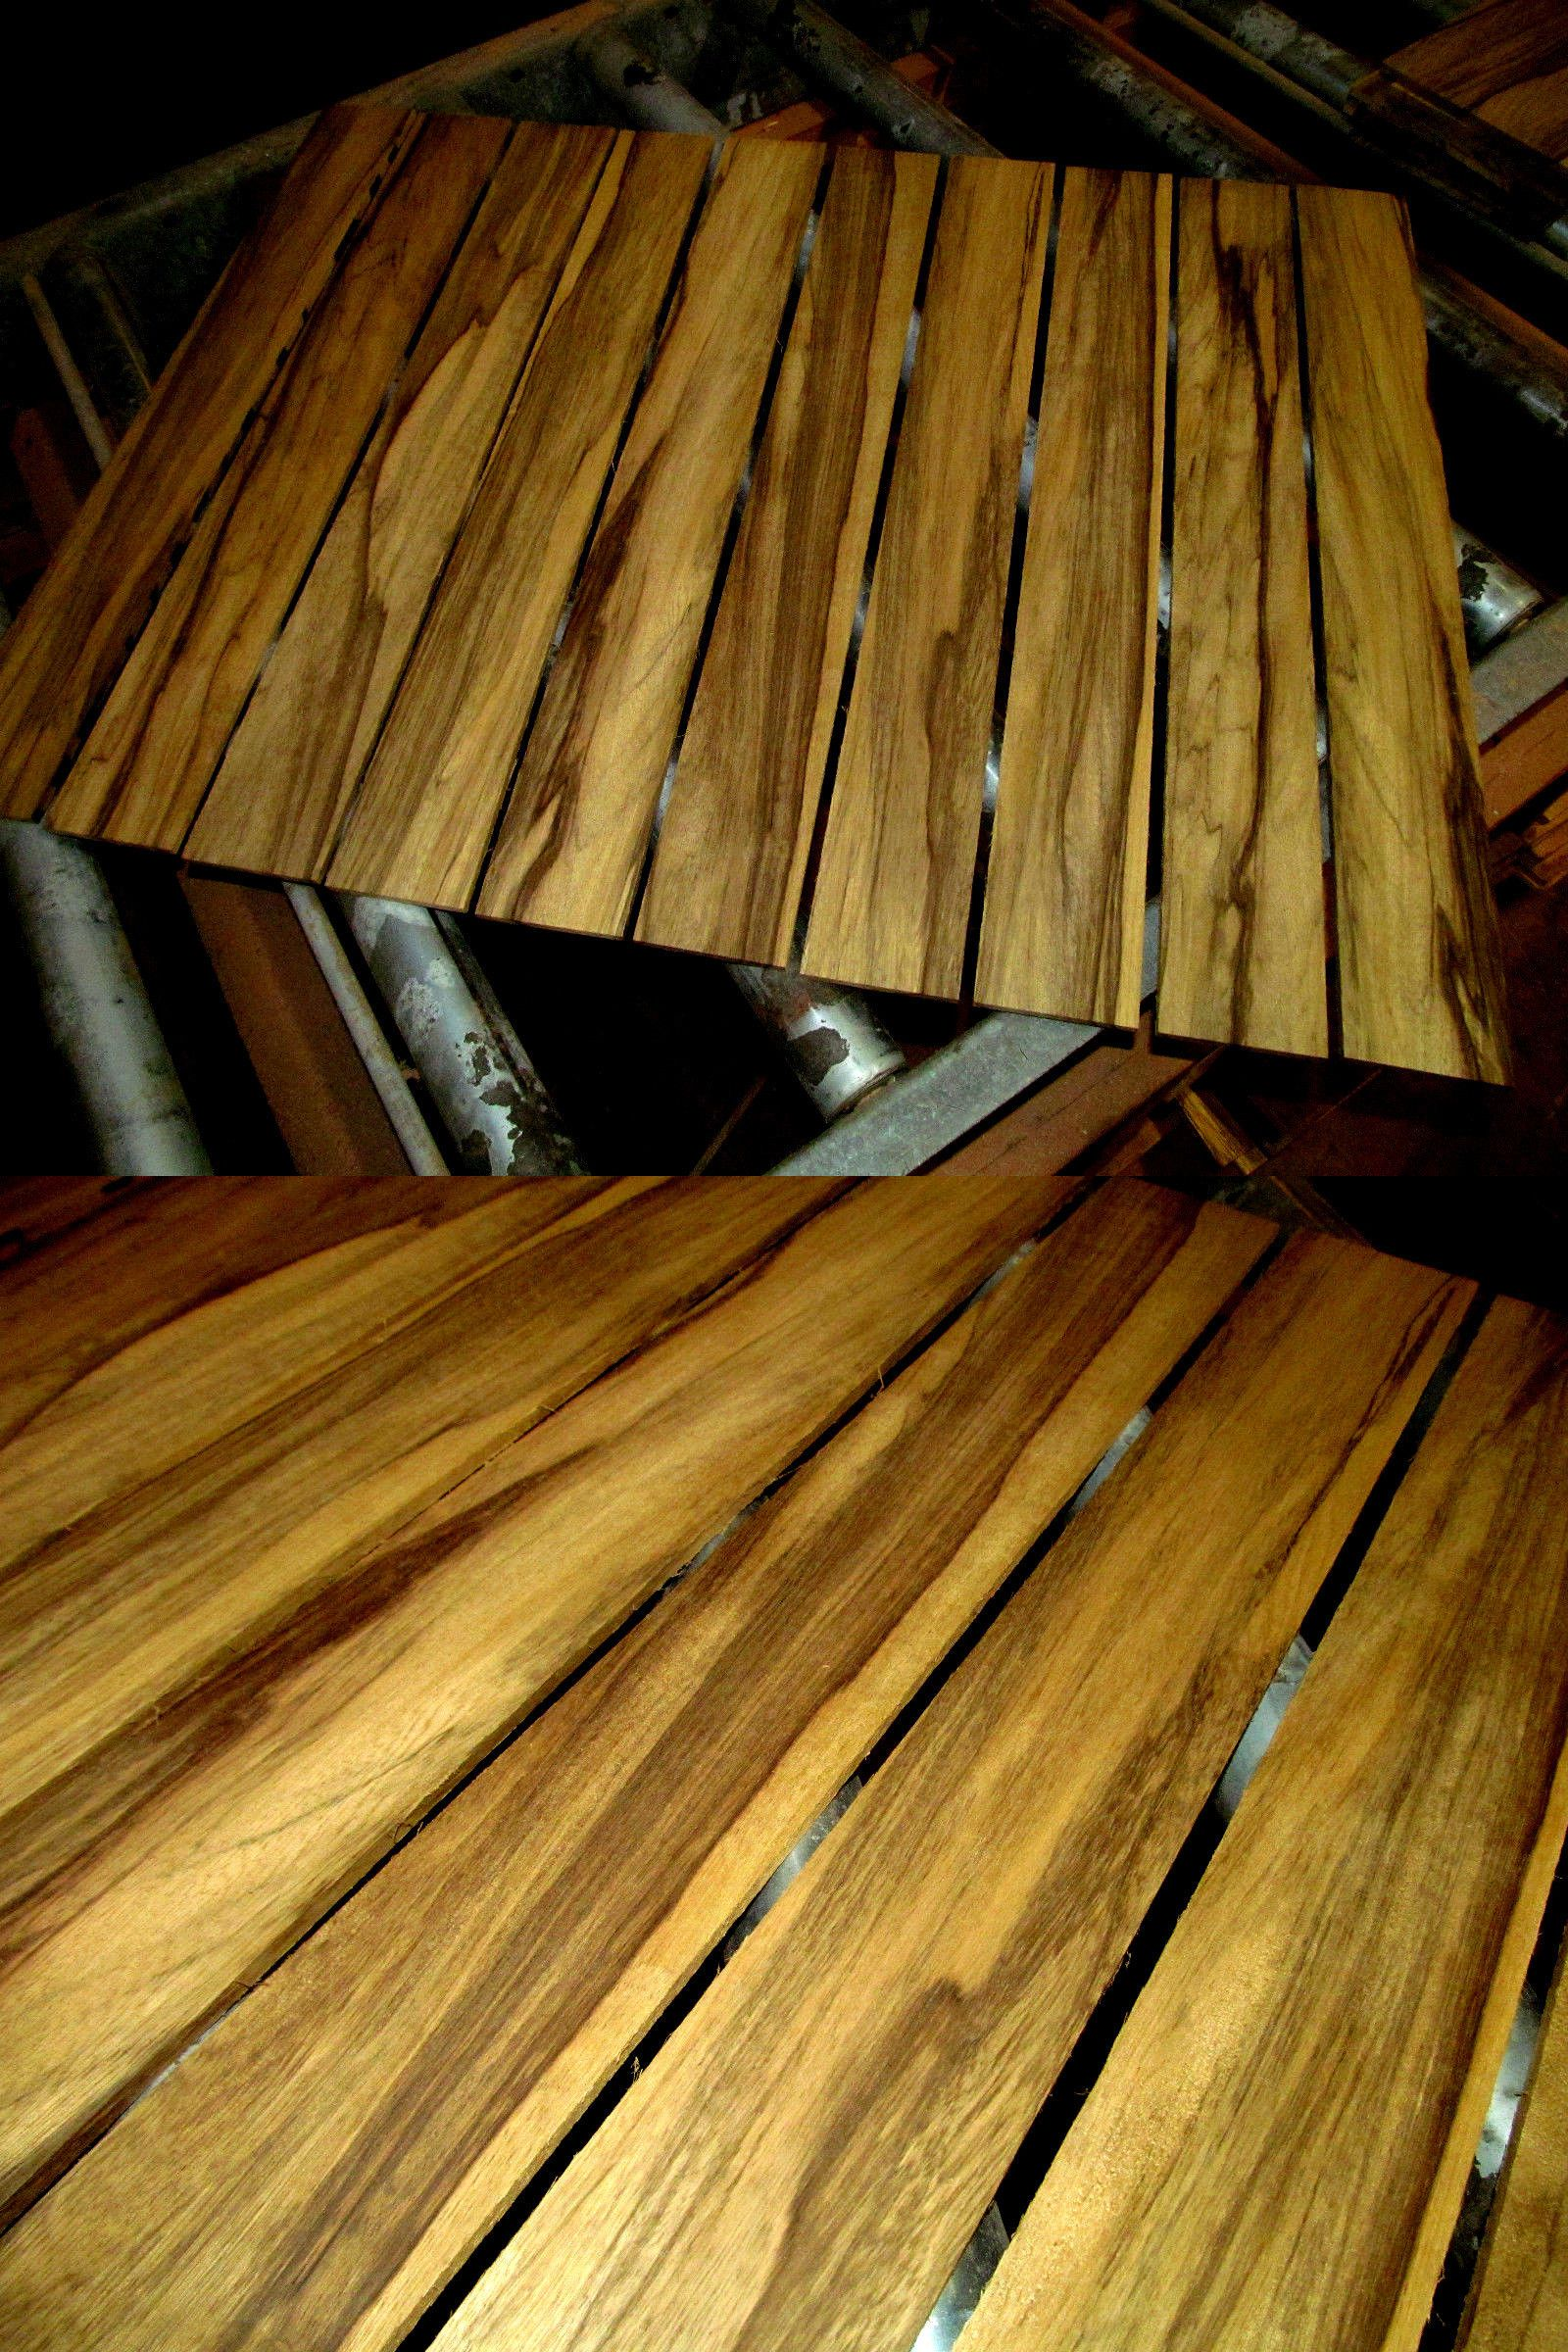 Woodworking lumber 84011 ten 10 pieces thin kiln dried sanded exotic black limba 24 x 3 x 1 4 wood buy it now only 49 95 on ebay